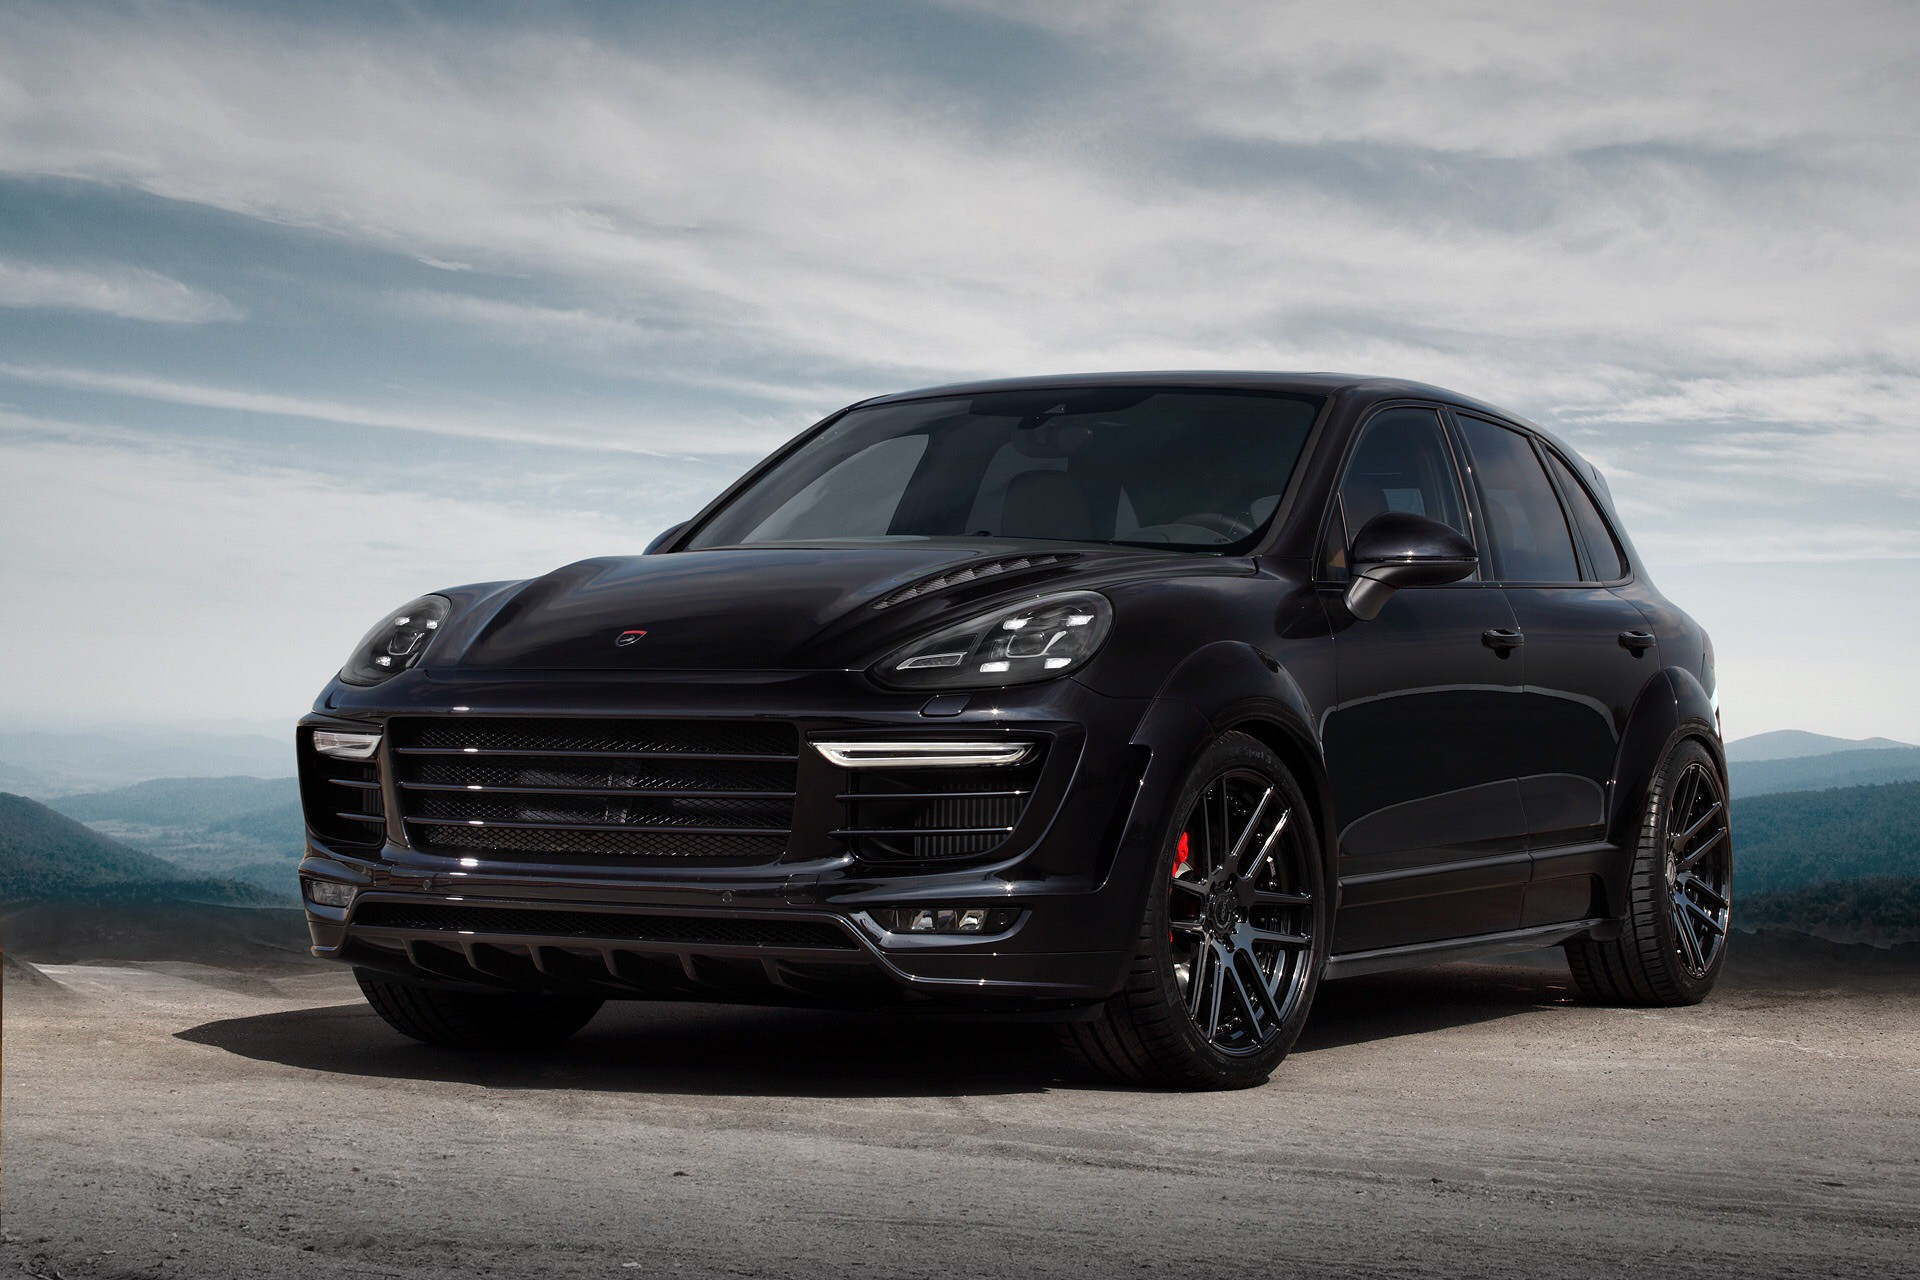 Porsche Cayenne Gt 2015 Black On Black Topcar